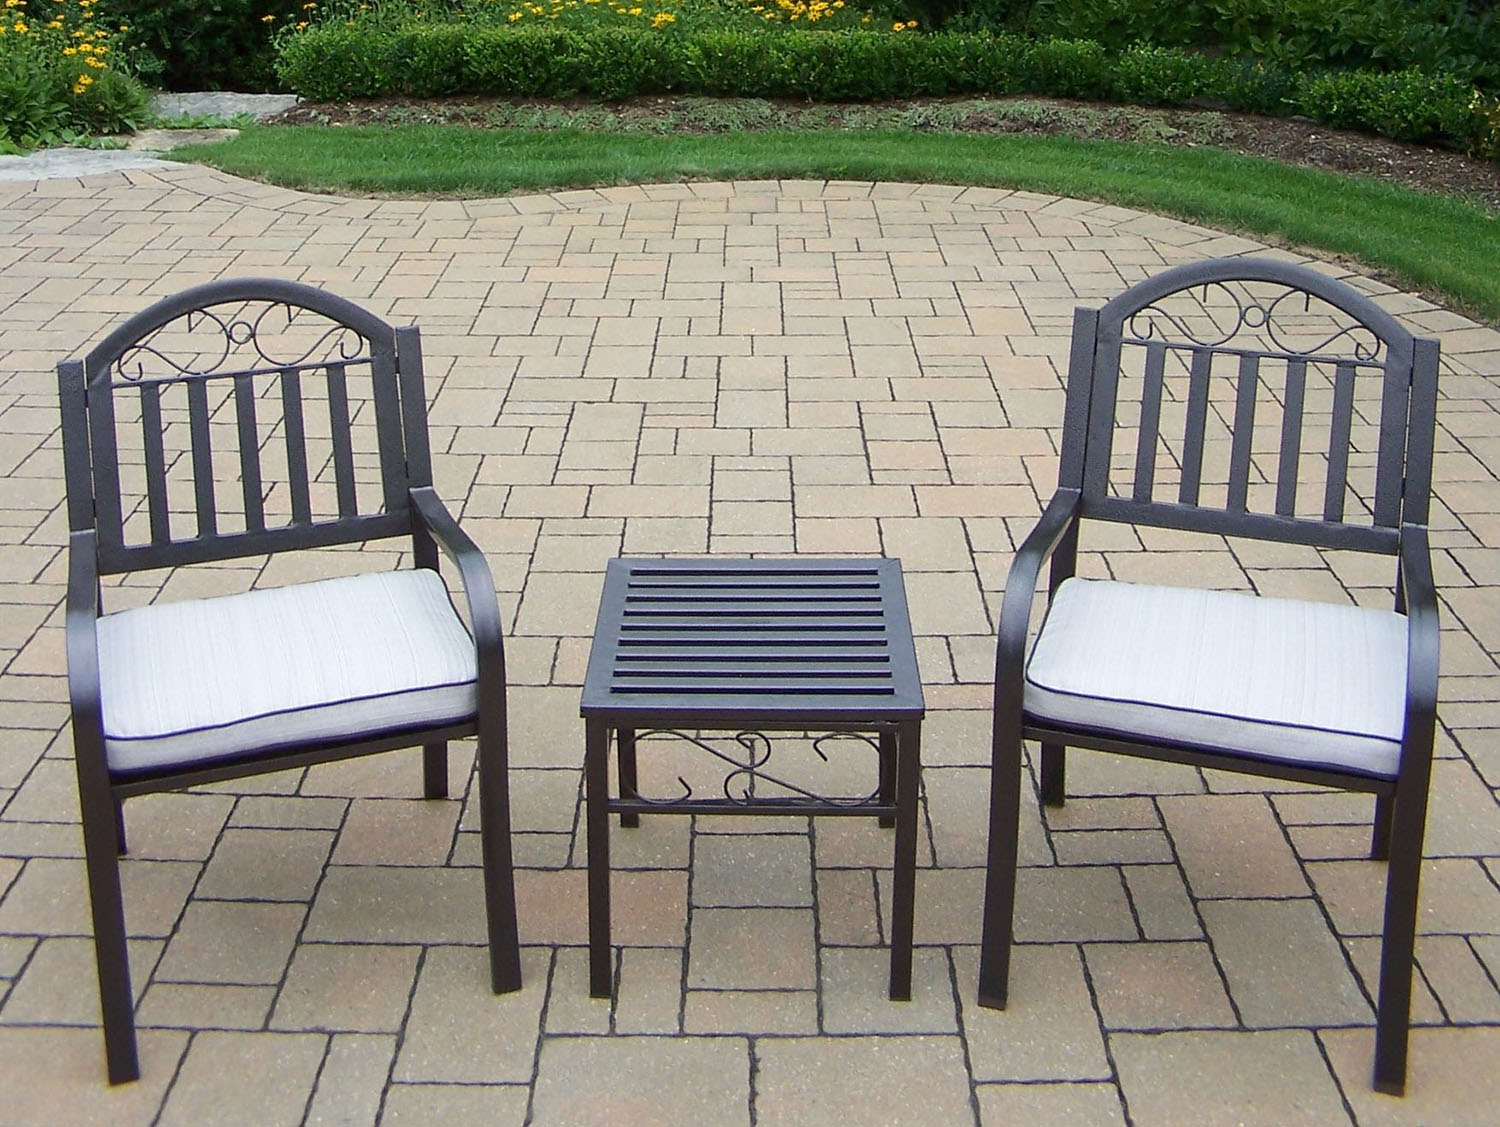 Remarkable Chat Set Rochester Cushion Chairs Side Table Product Photo